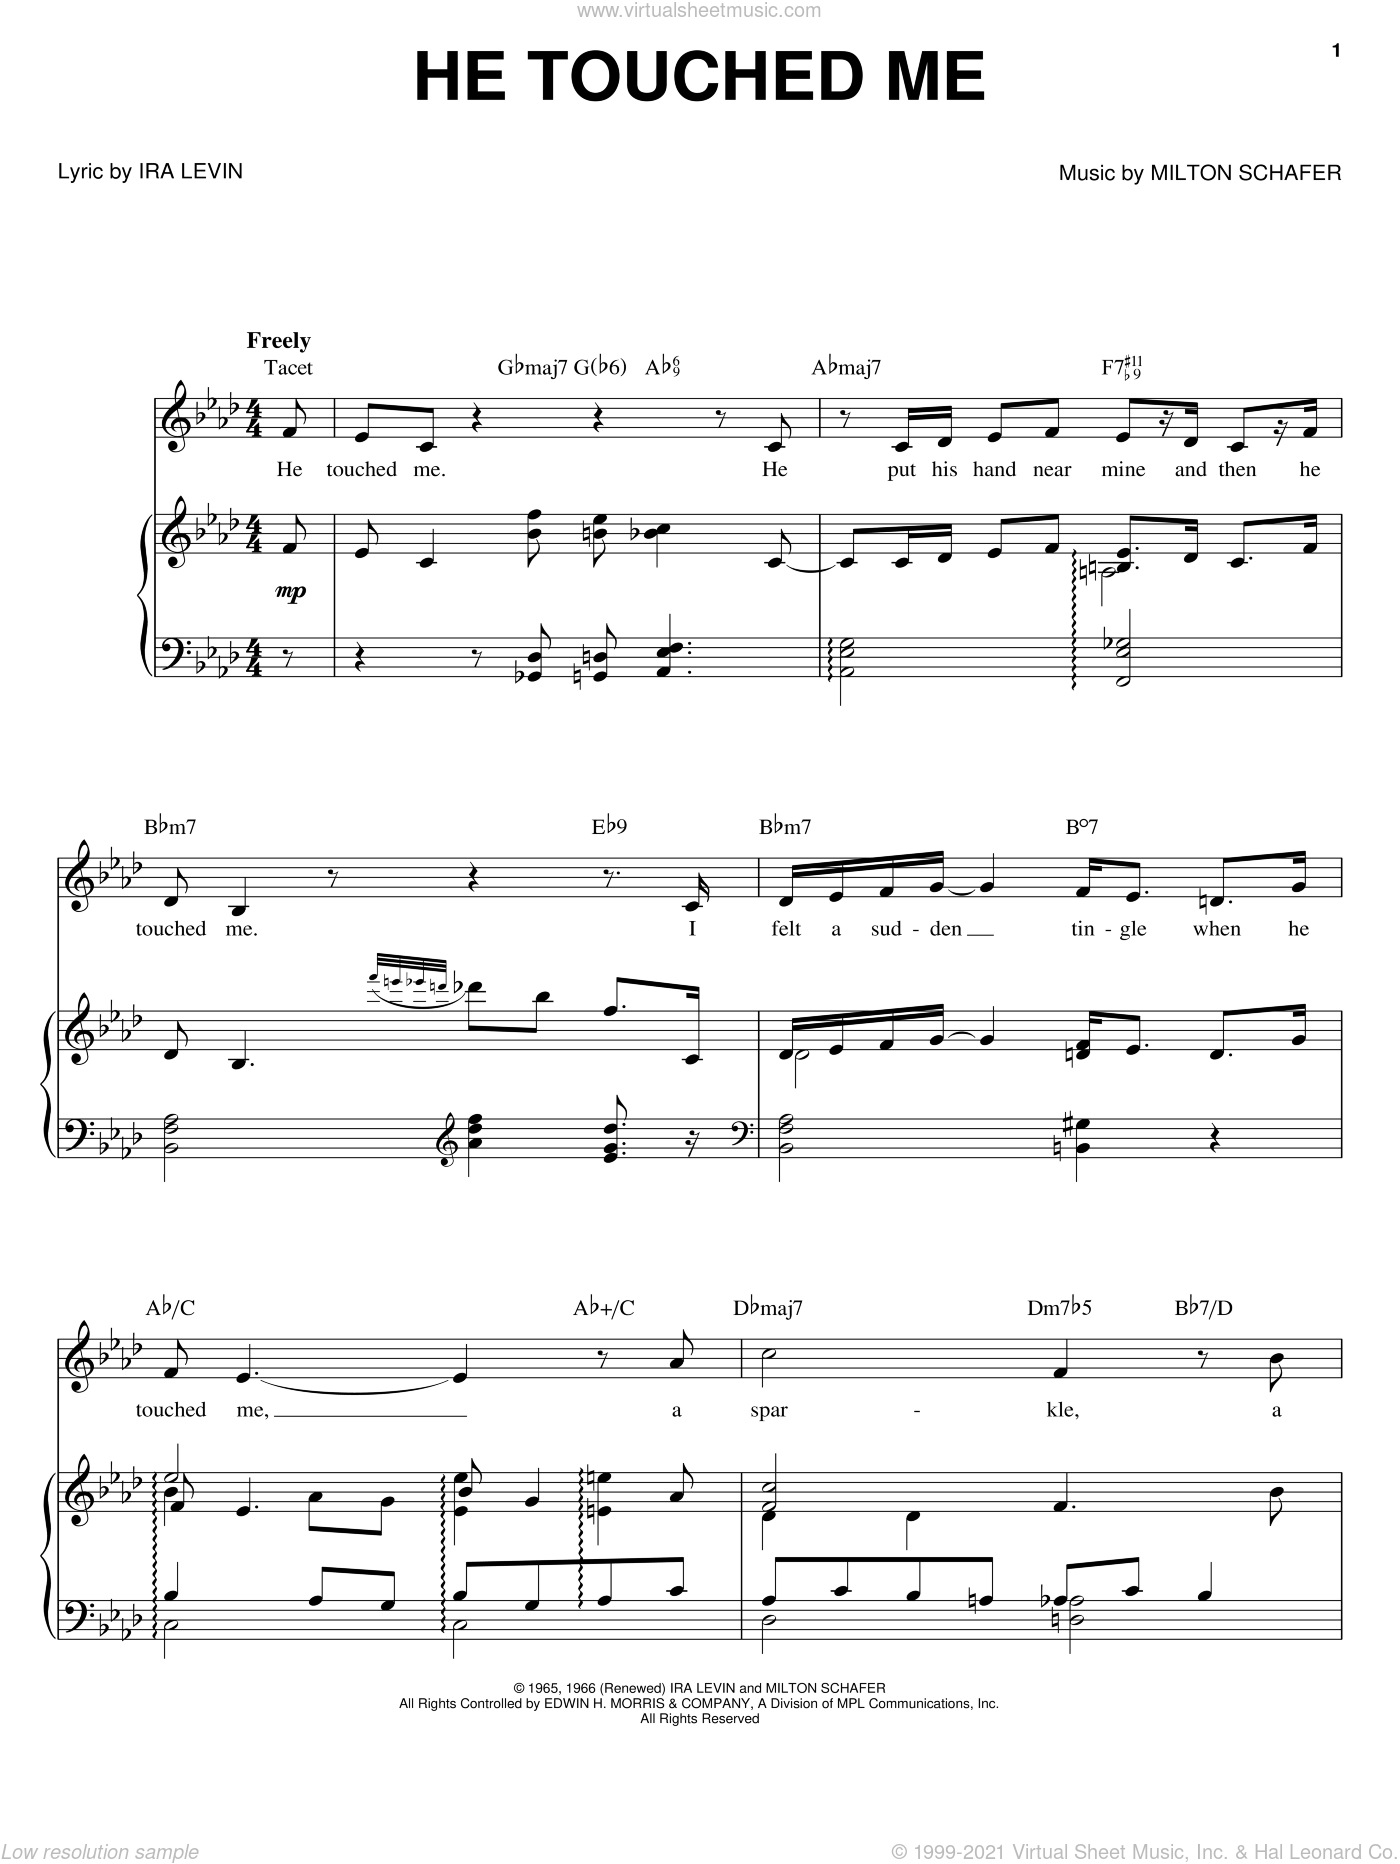 He Touched Me sheet music for voice, piano or guitar by Barbra Streisand, Ira Levin and Milton Schafer, intermediate skill level